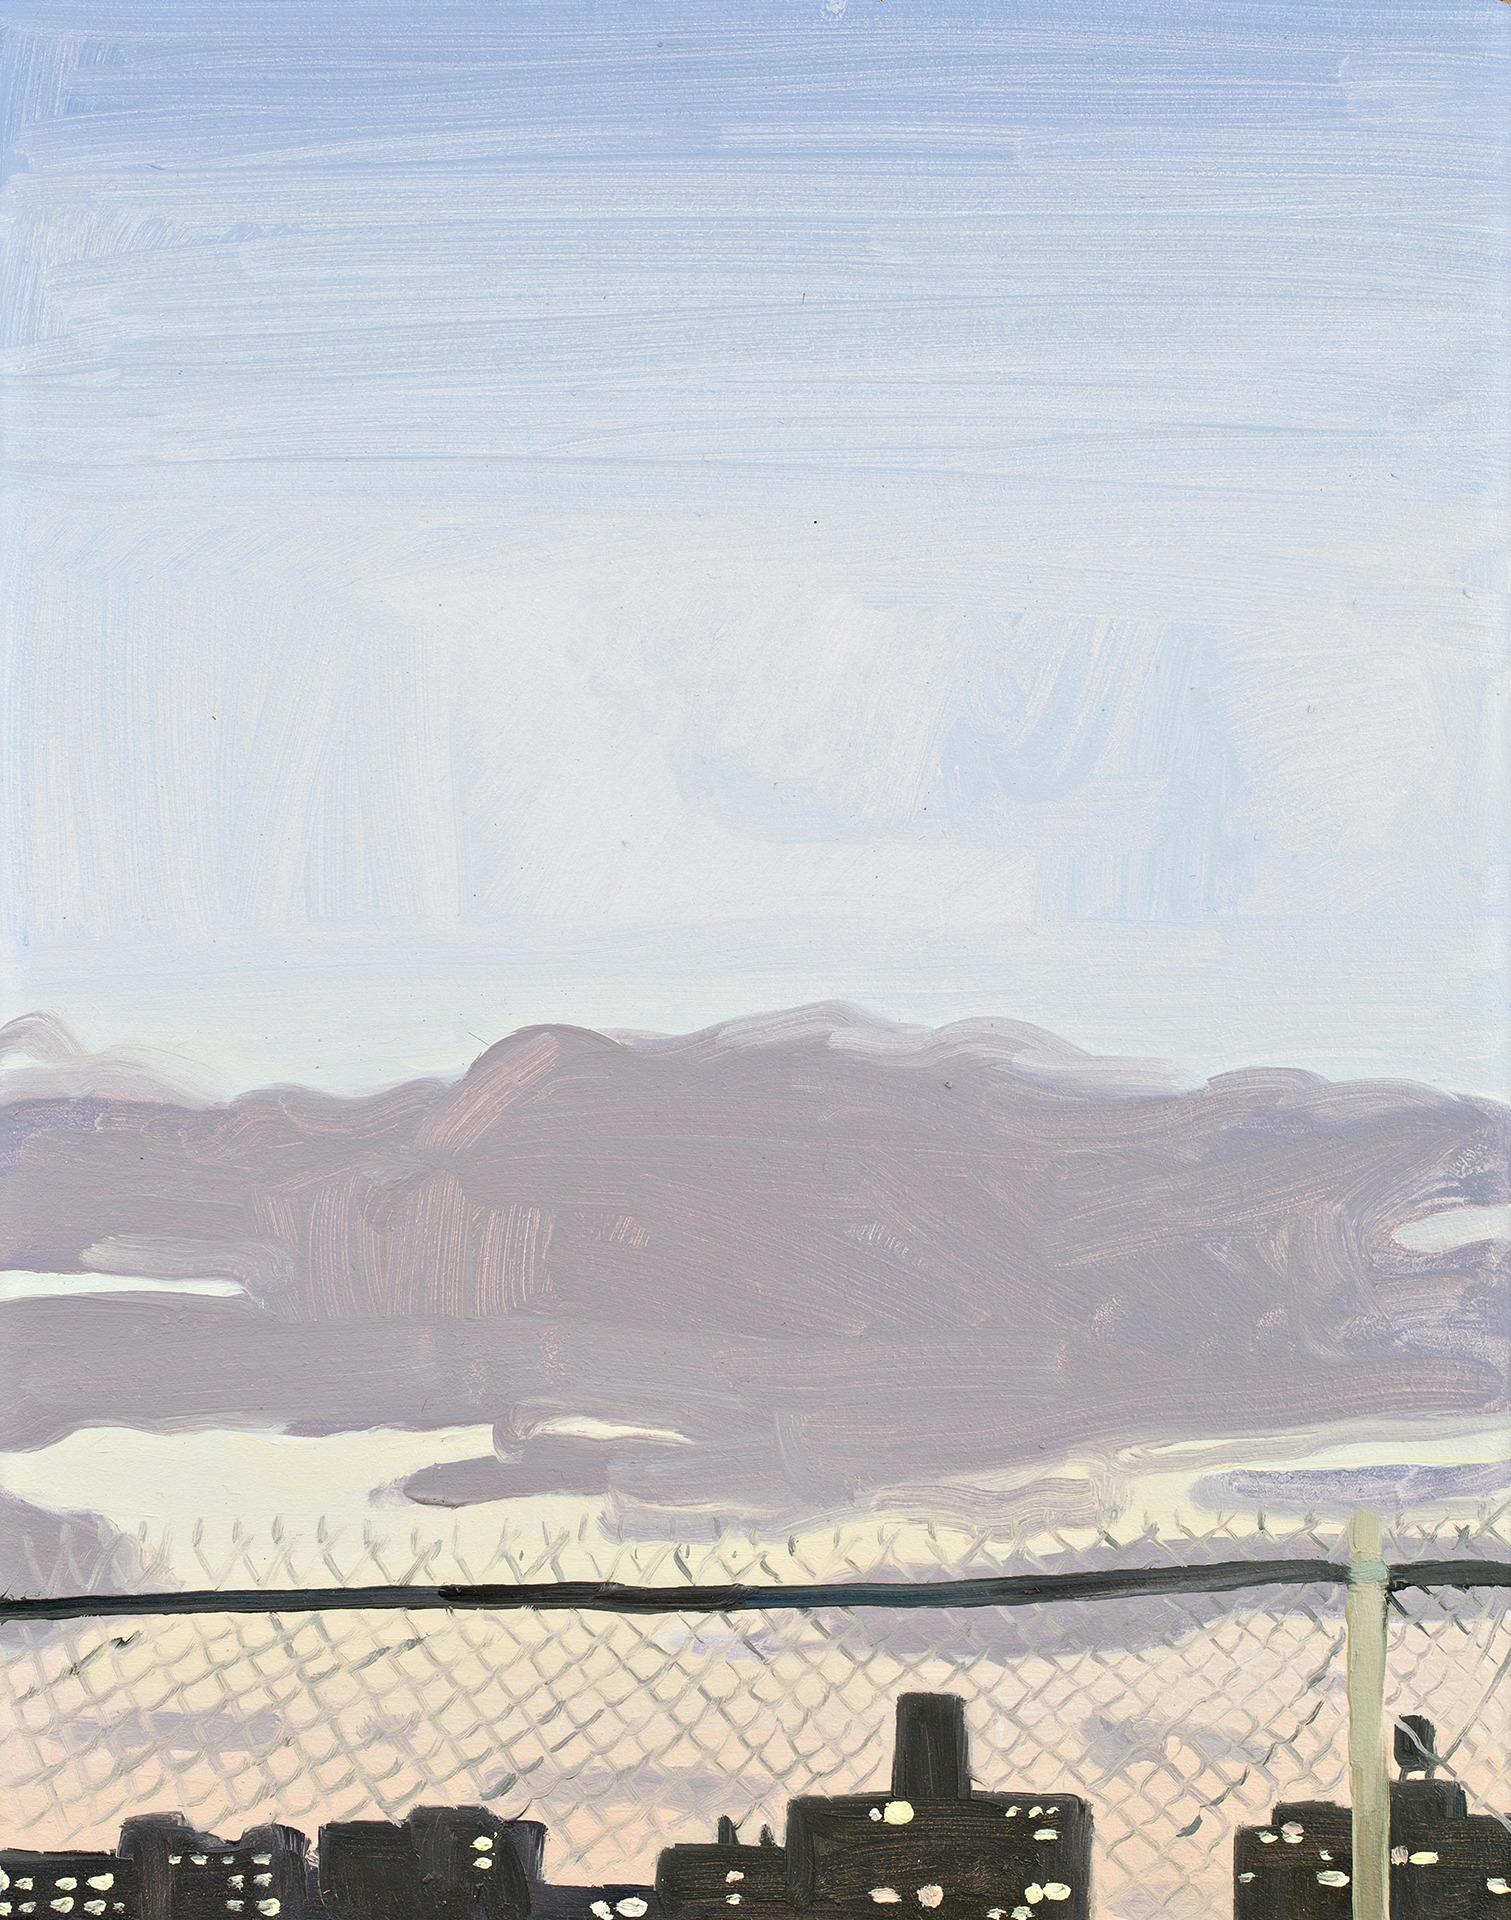 A painting by Claudia Keep titled Sunset, Through the Fence, dated 2020.